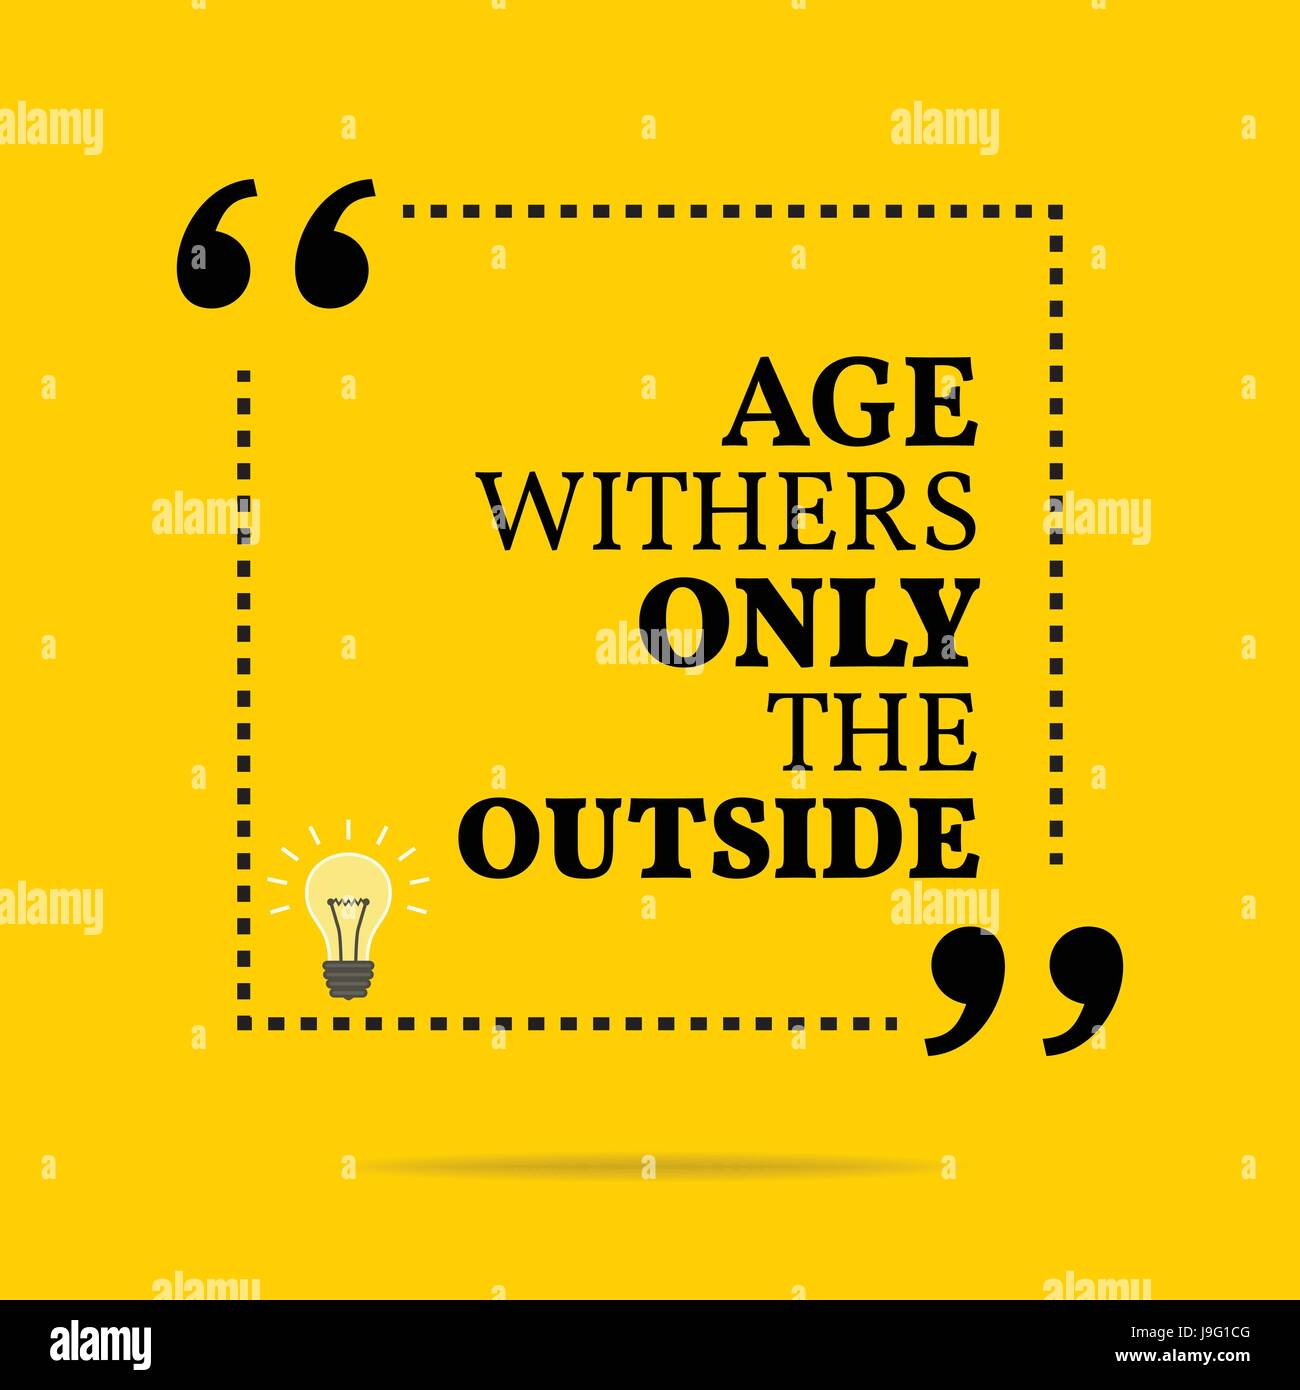 Inspirational Motivational Quote Age Withers Only The Outside Stock